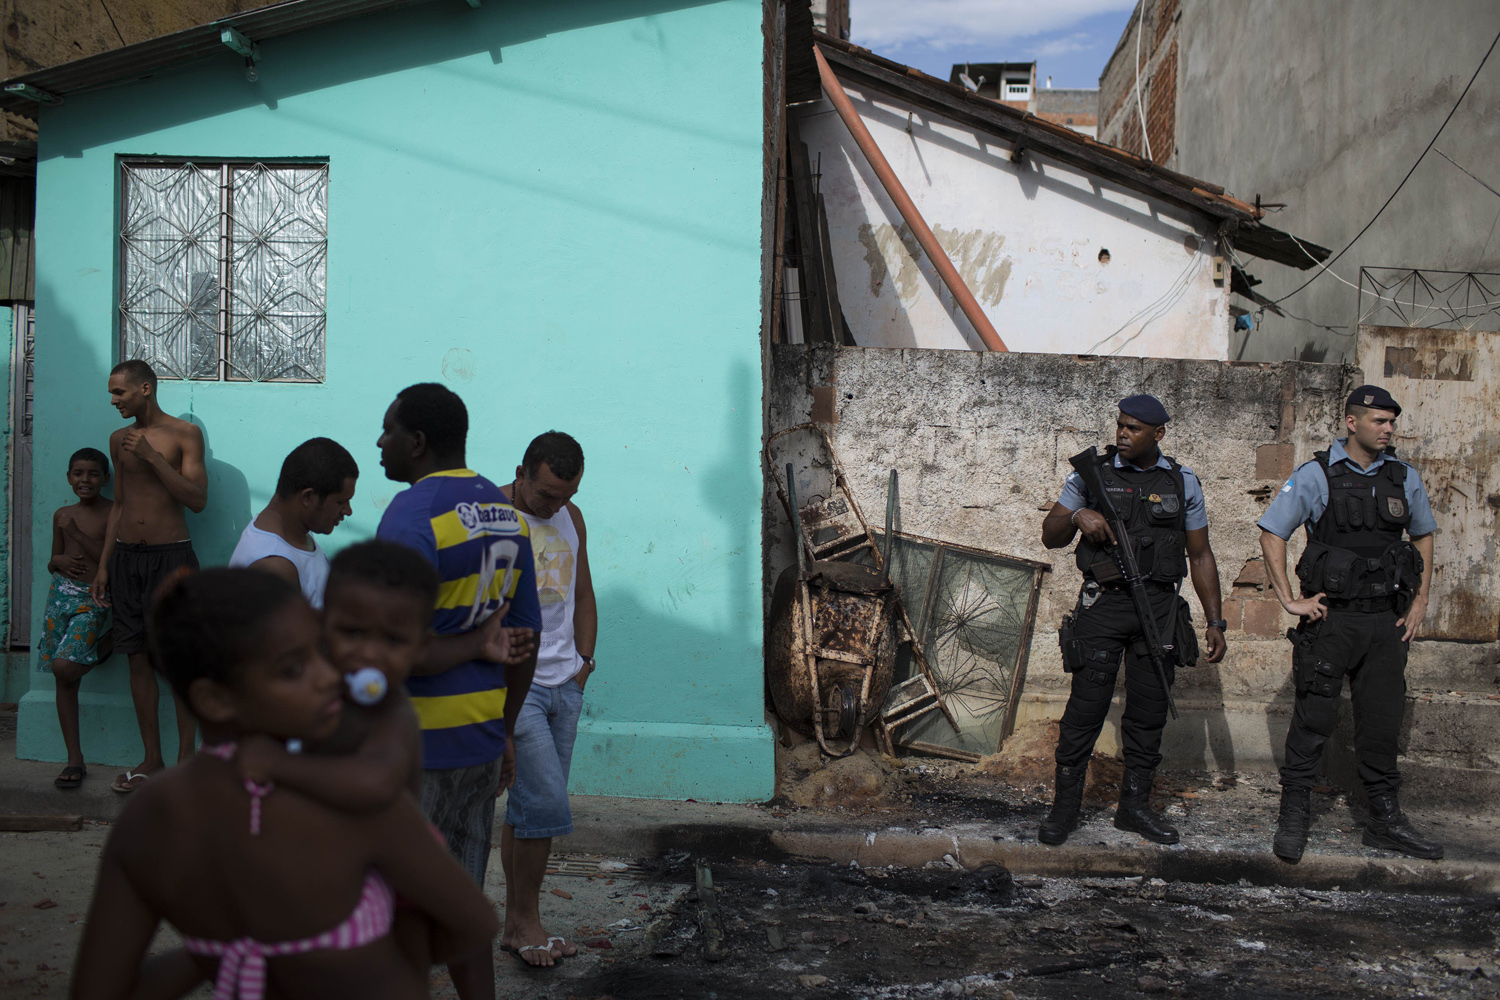 Mar. 21, 2014. Police officers stand guard among burned remains of a car from the Pacifying Police Unit post at the Mandela shantytown, part of the Manguinhos slum complex, in Rio de Janeiro, Brazil.